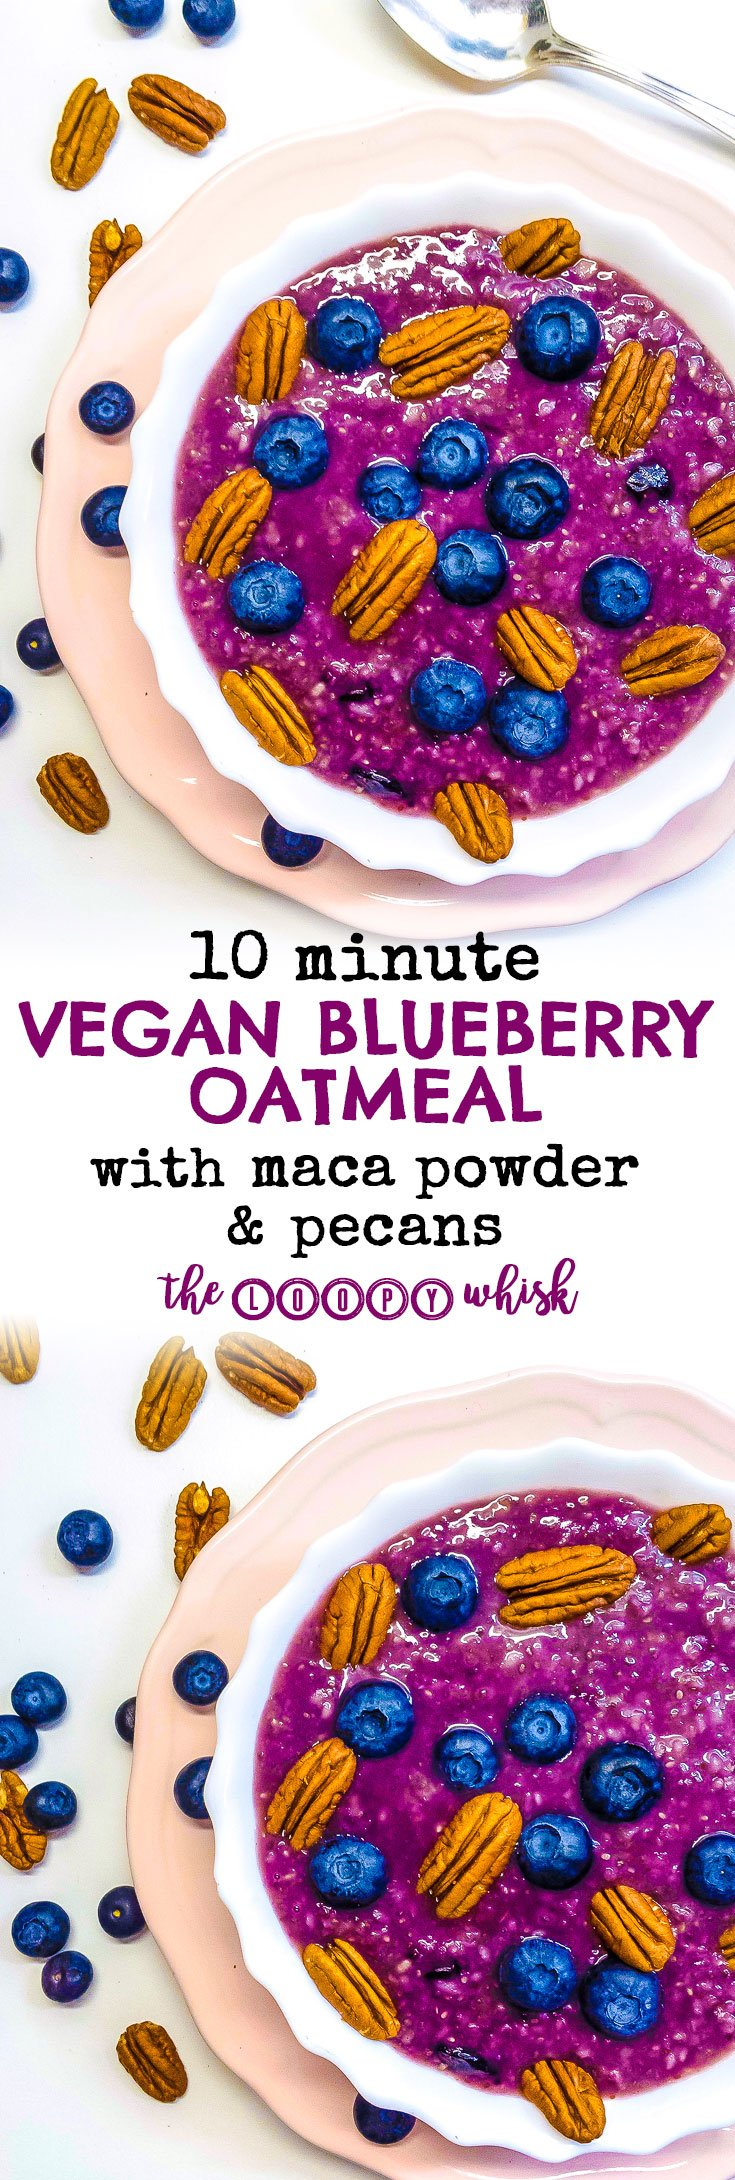 Vegan Blueberry Oatmeal with Maca Powder and Pecans - Chock-full of healthy fats, minerals, vitamins and fibre, this 10 minute vegan blueberry oatmeal with maca powder and pecans tastes just like blueberry pie. The ideal healthy oatmeal recipe for a nutritional powerhouse of a meal that still tastes like dessert.